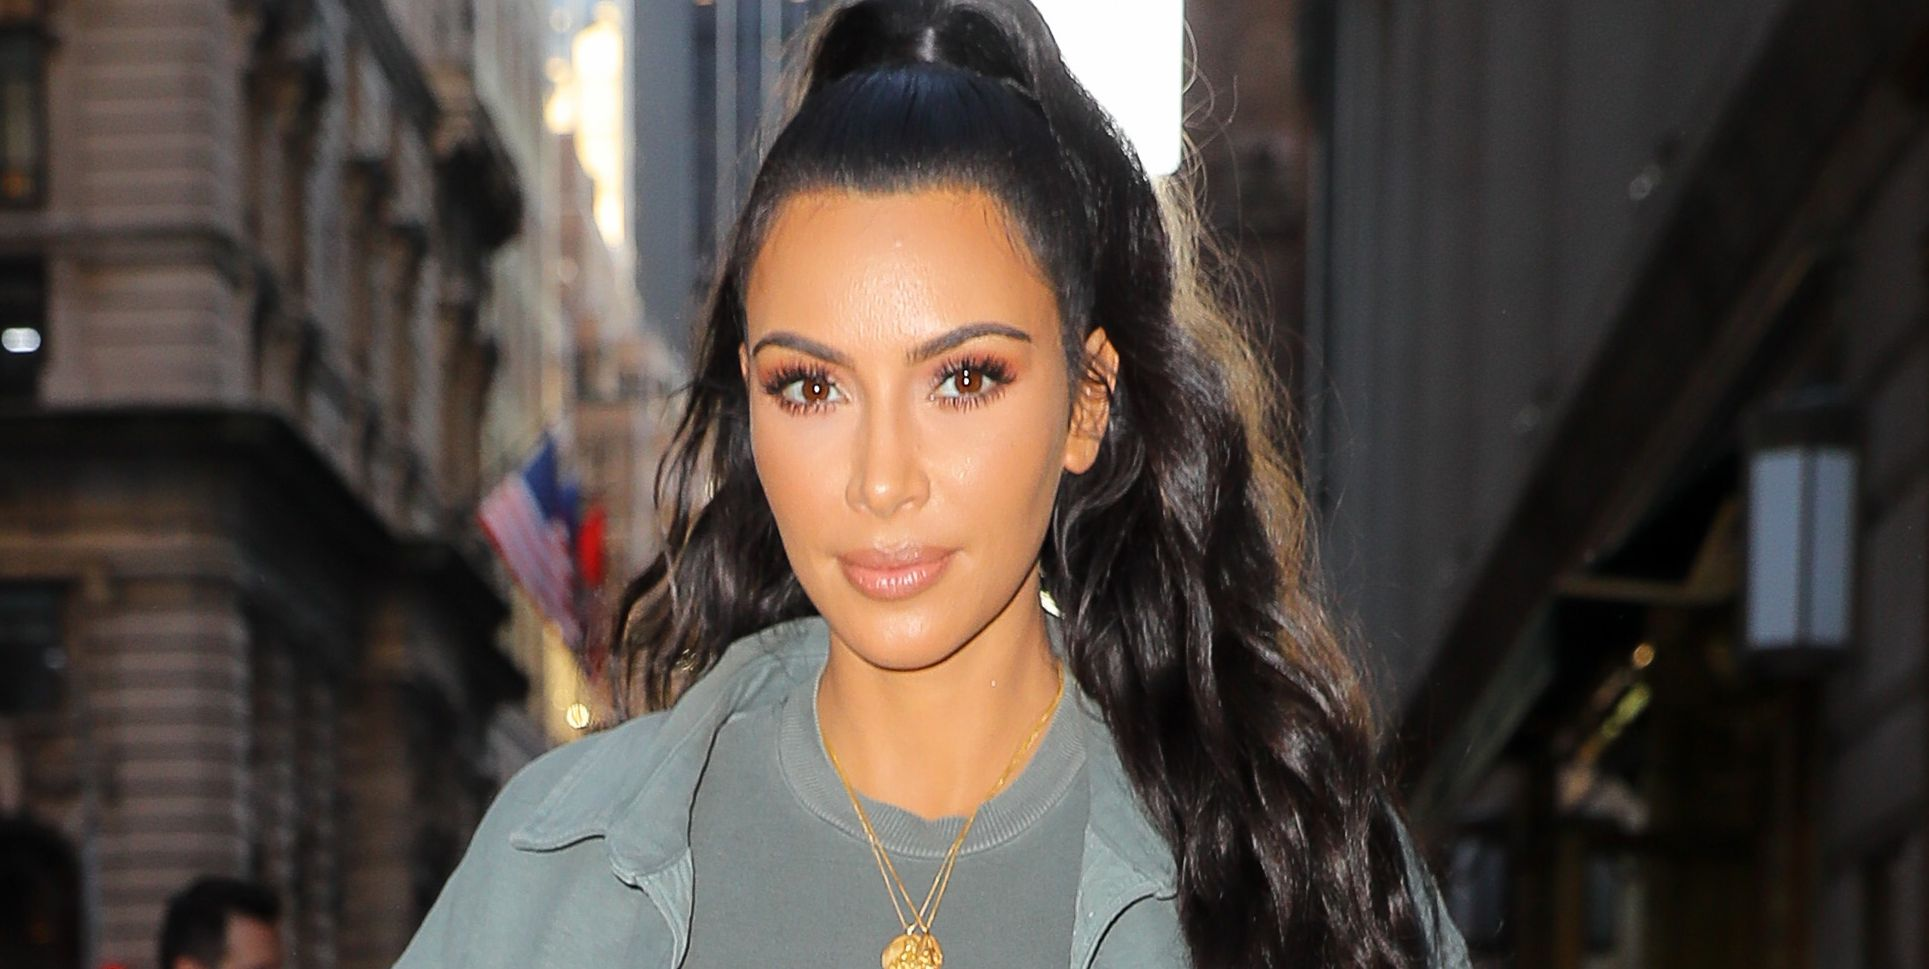 Kim Kardashian was spotted leaving the Polo Bar in New York City